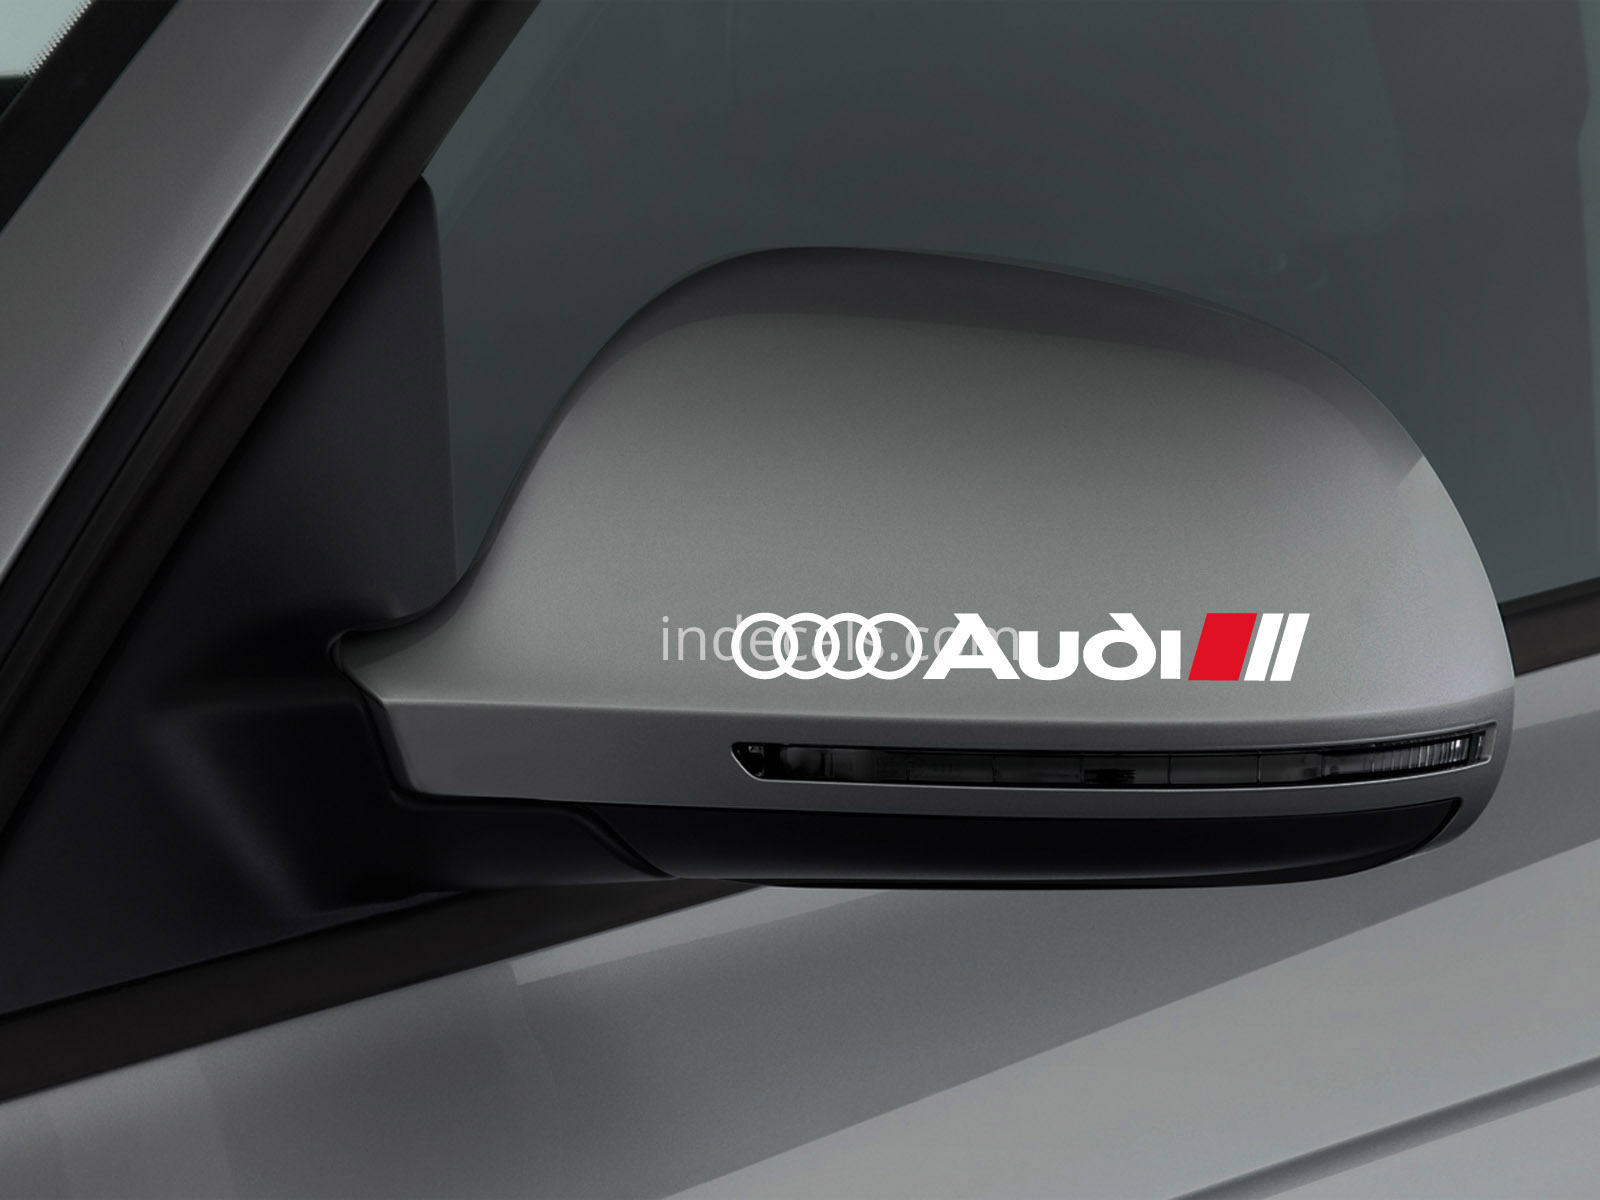 3 x Audi Stickers for Mirror - White